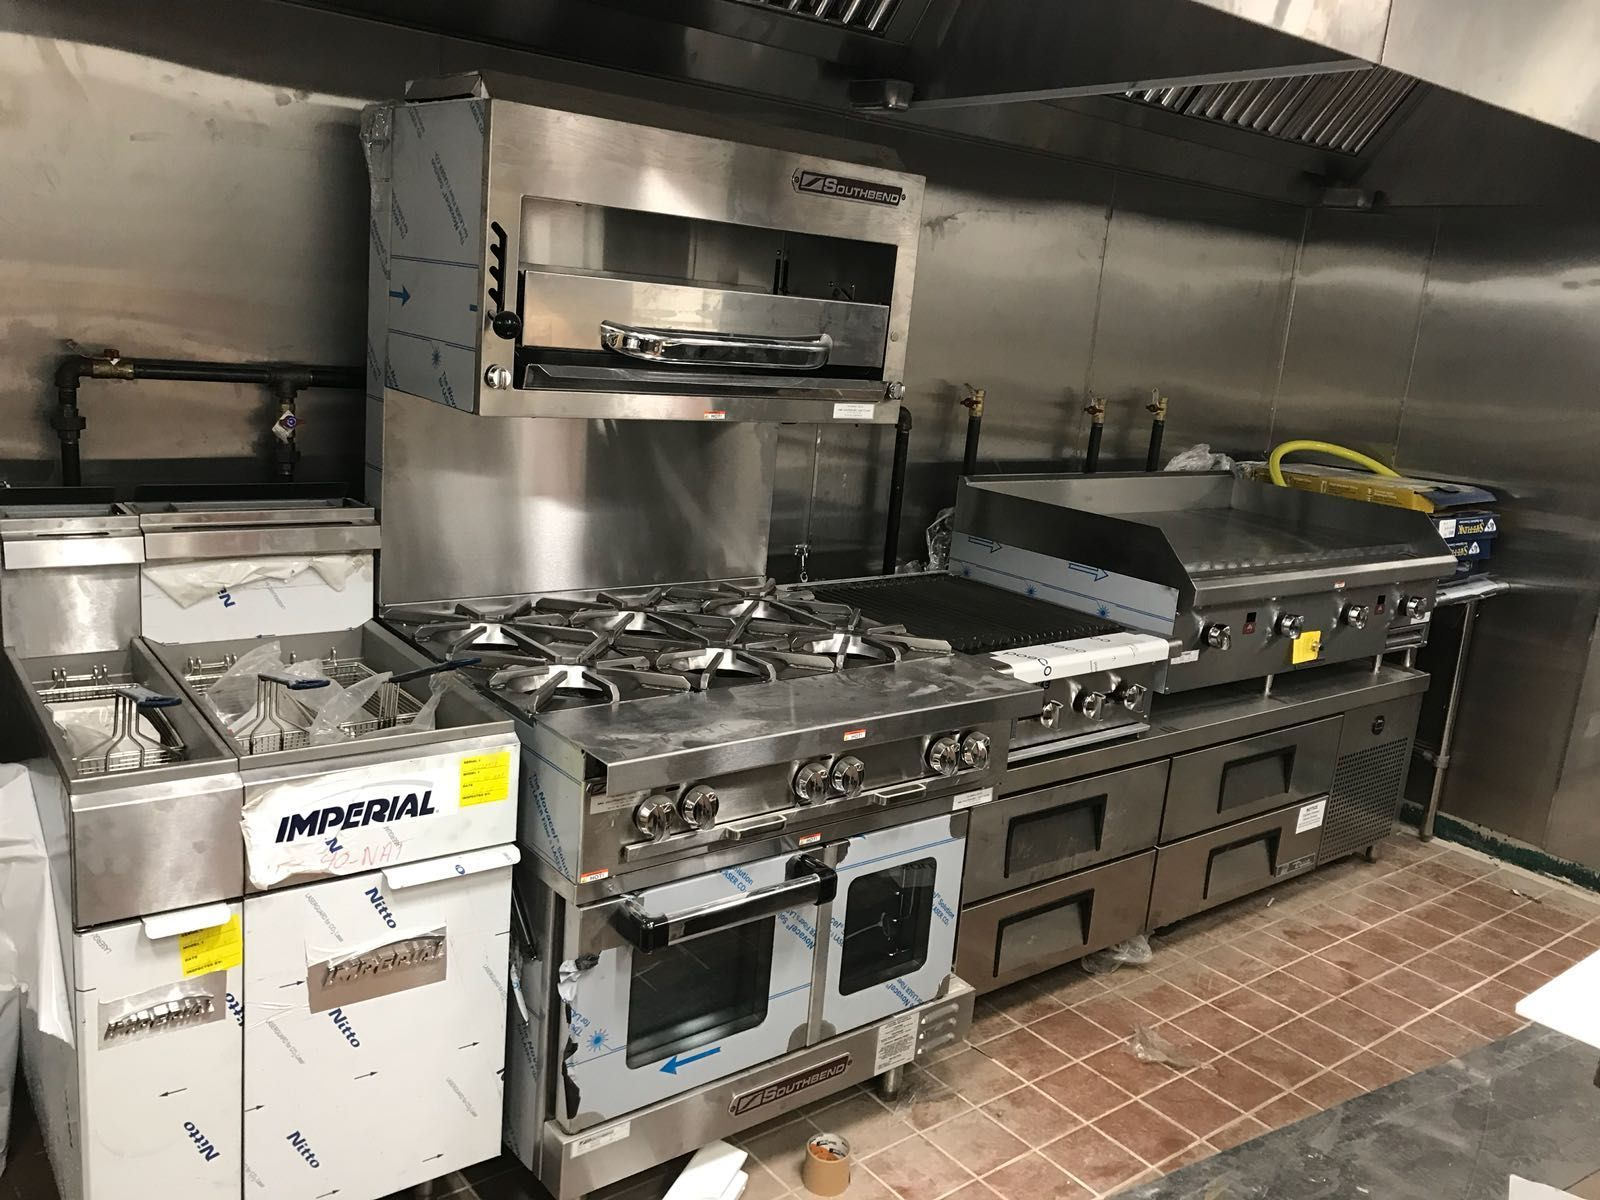 Carrying Imperial Fryers, Southbend Ranges, True Worktop. Kitchen Bench And Table Set. Kitchen Cabinets Uk. Solid Oak Kitchen Nook. Kitchen Wall Hooks For Pots And Pans. Glass Haus Kitchen Yelp. Kitchen Interior Concepts. Kitchen Island Cart Kmart. Kitchen Makeover Hamilton